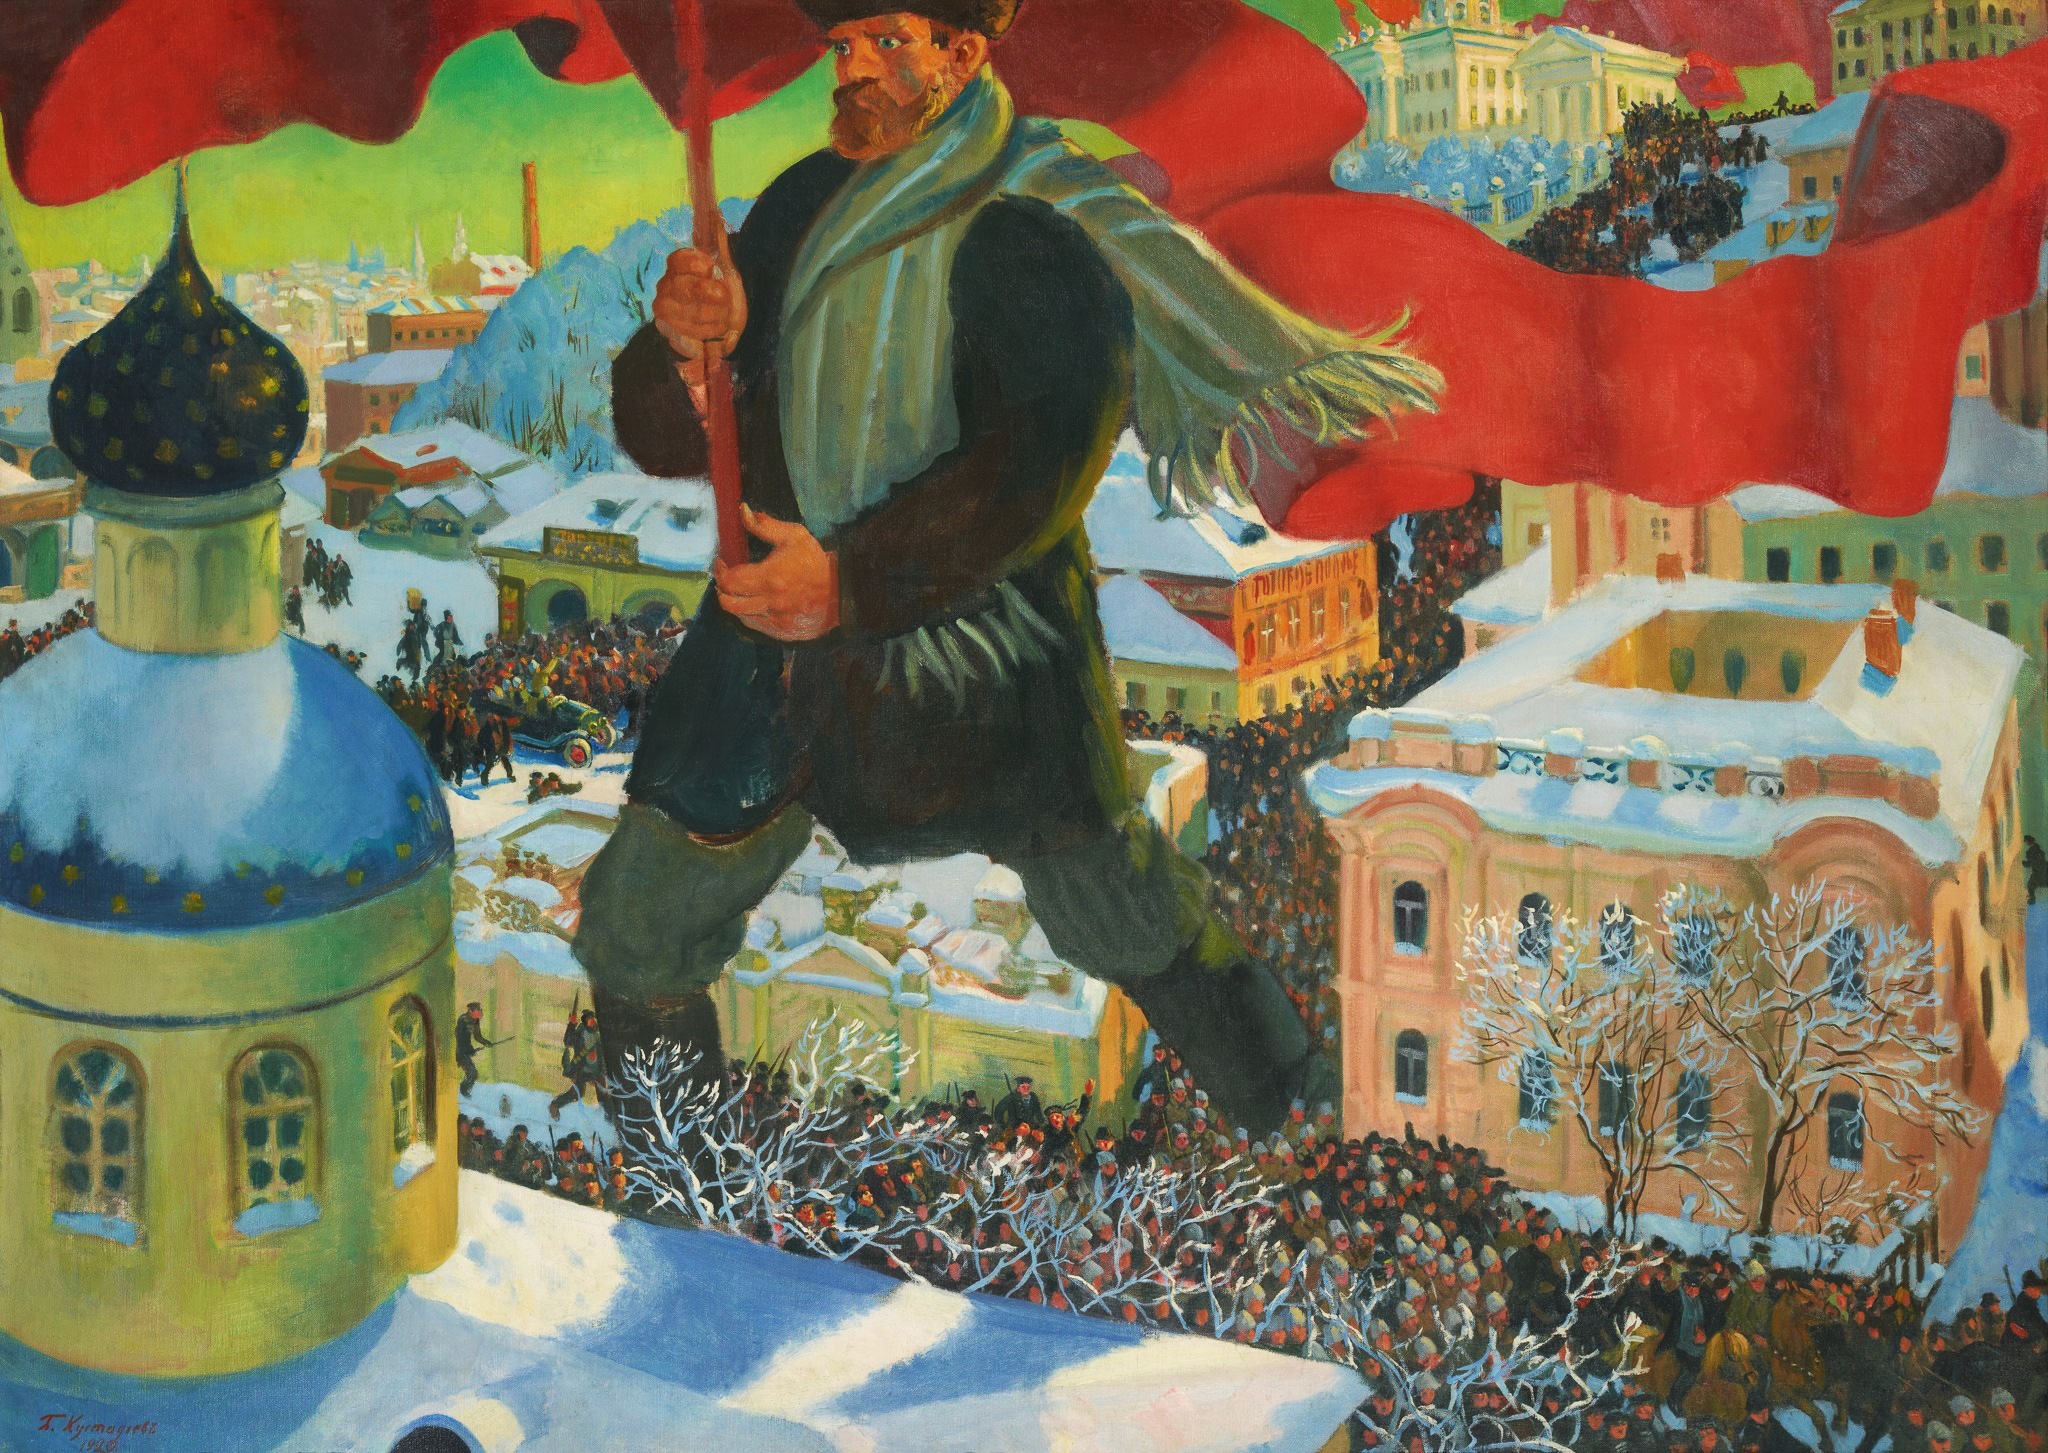 https://upload.wikimedia.org/wikipedia/commons/7/70/Kustodiev_The_Bolshevik.jpg